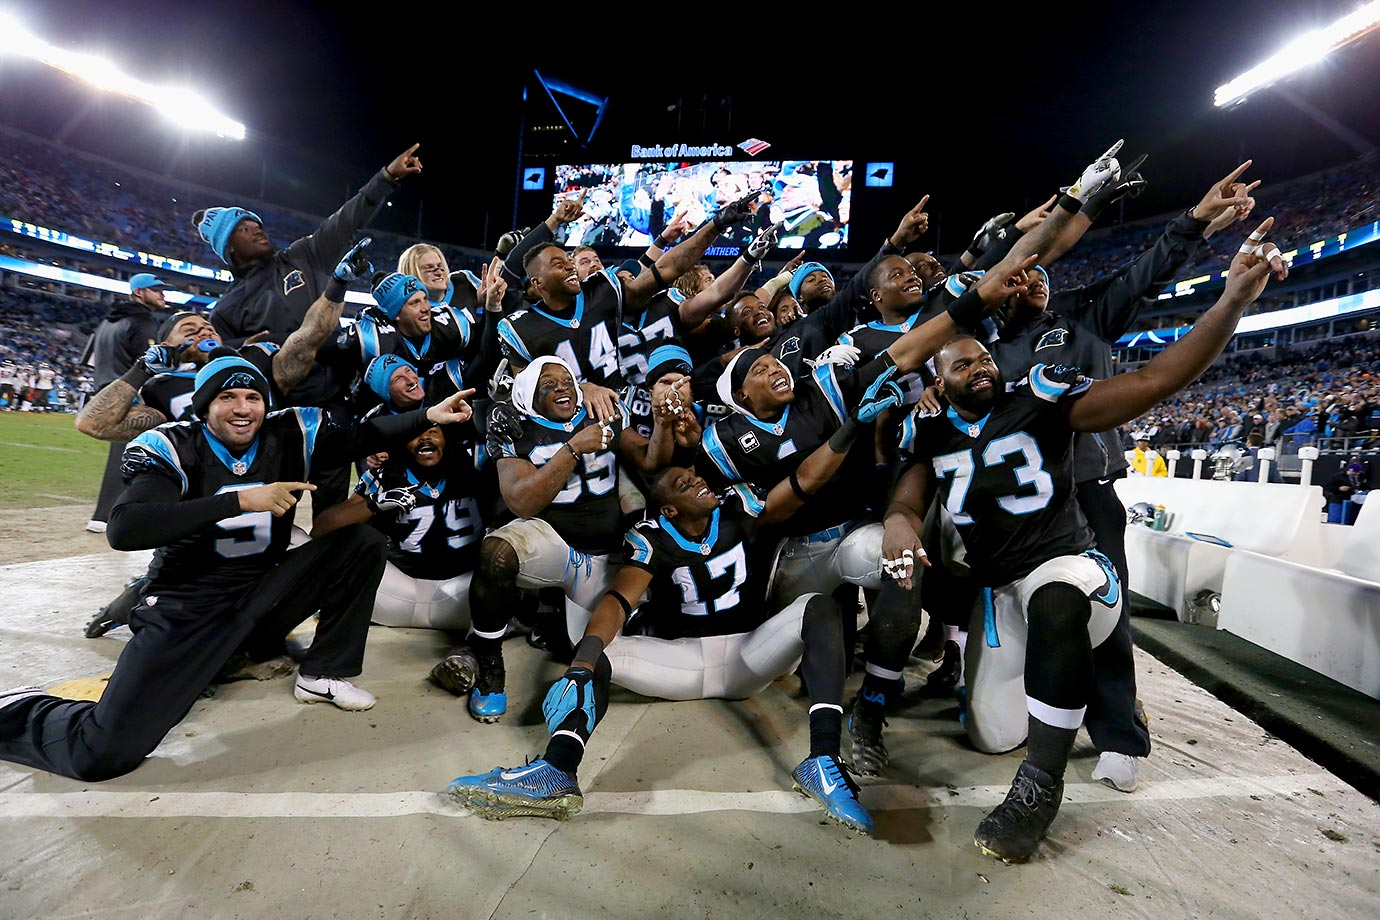 Cam Newton of the Carolina Panthers organizes a team photo during a game against the Tampa Bay Buccaneers.